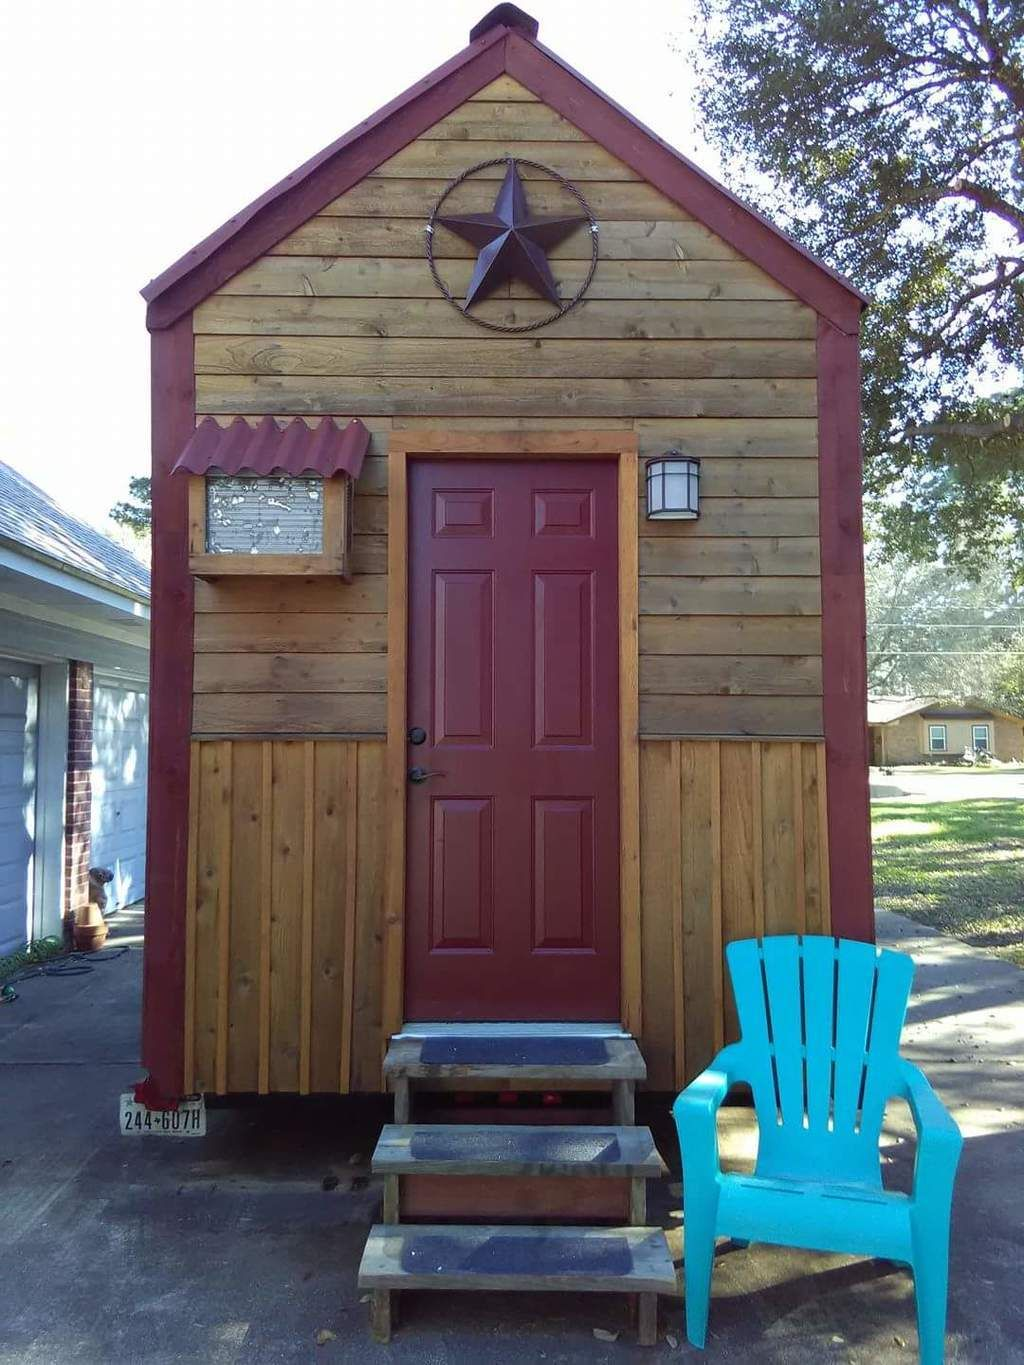 """Rustic western cedar charm inside & out. 130 Sq ft down & 90 Sq ft in twin lofts connected with a """"loft bridge"""". 16ft Trailer is 99% complete. (See below about the 1 %) Each loft will hold queen beds & with a queen futon downstairs it can sleep 6. Exterior has natural wood stain…"""